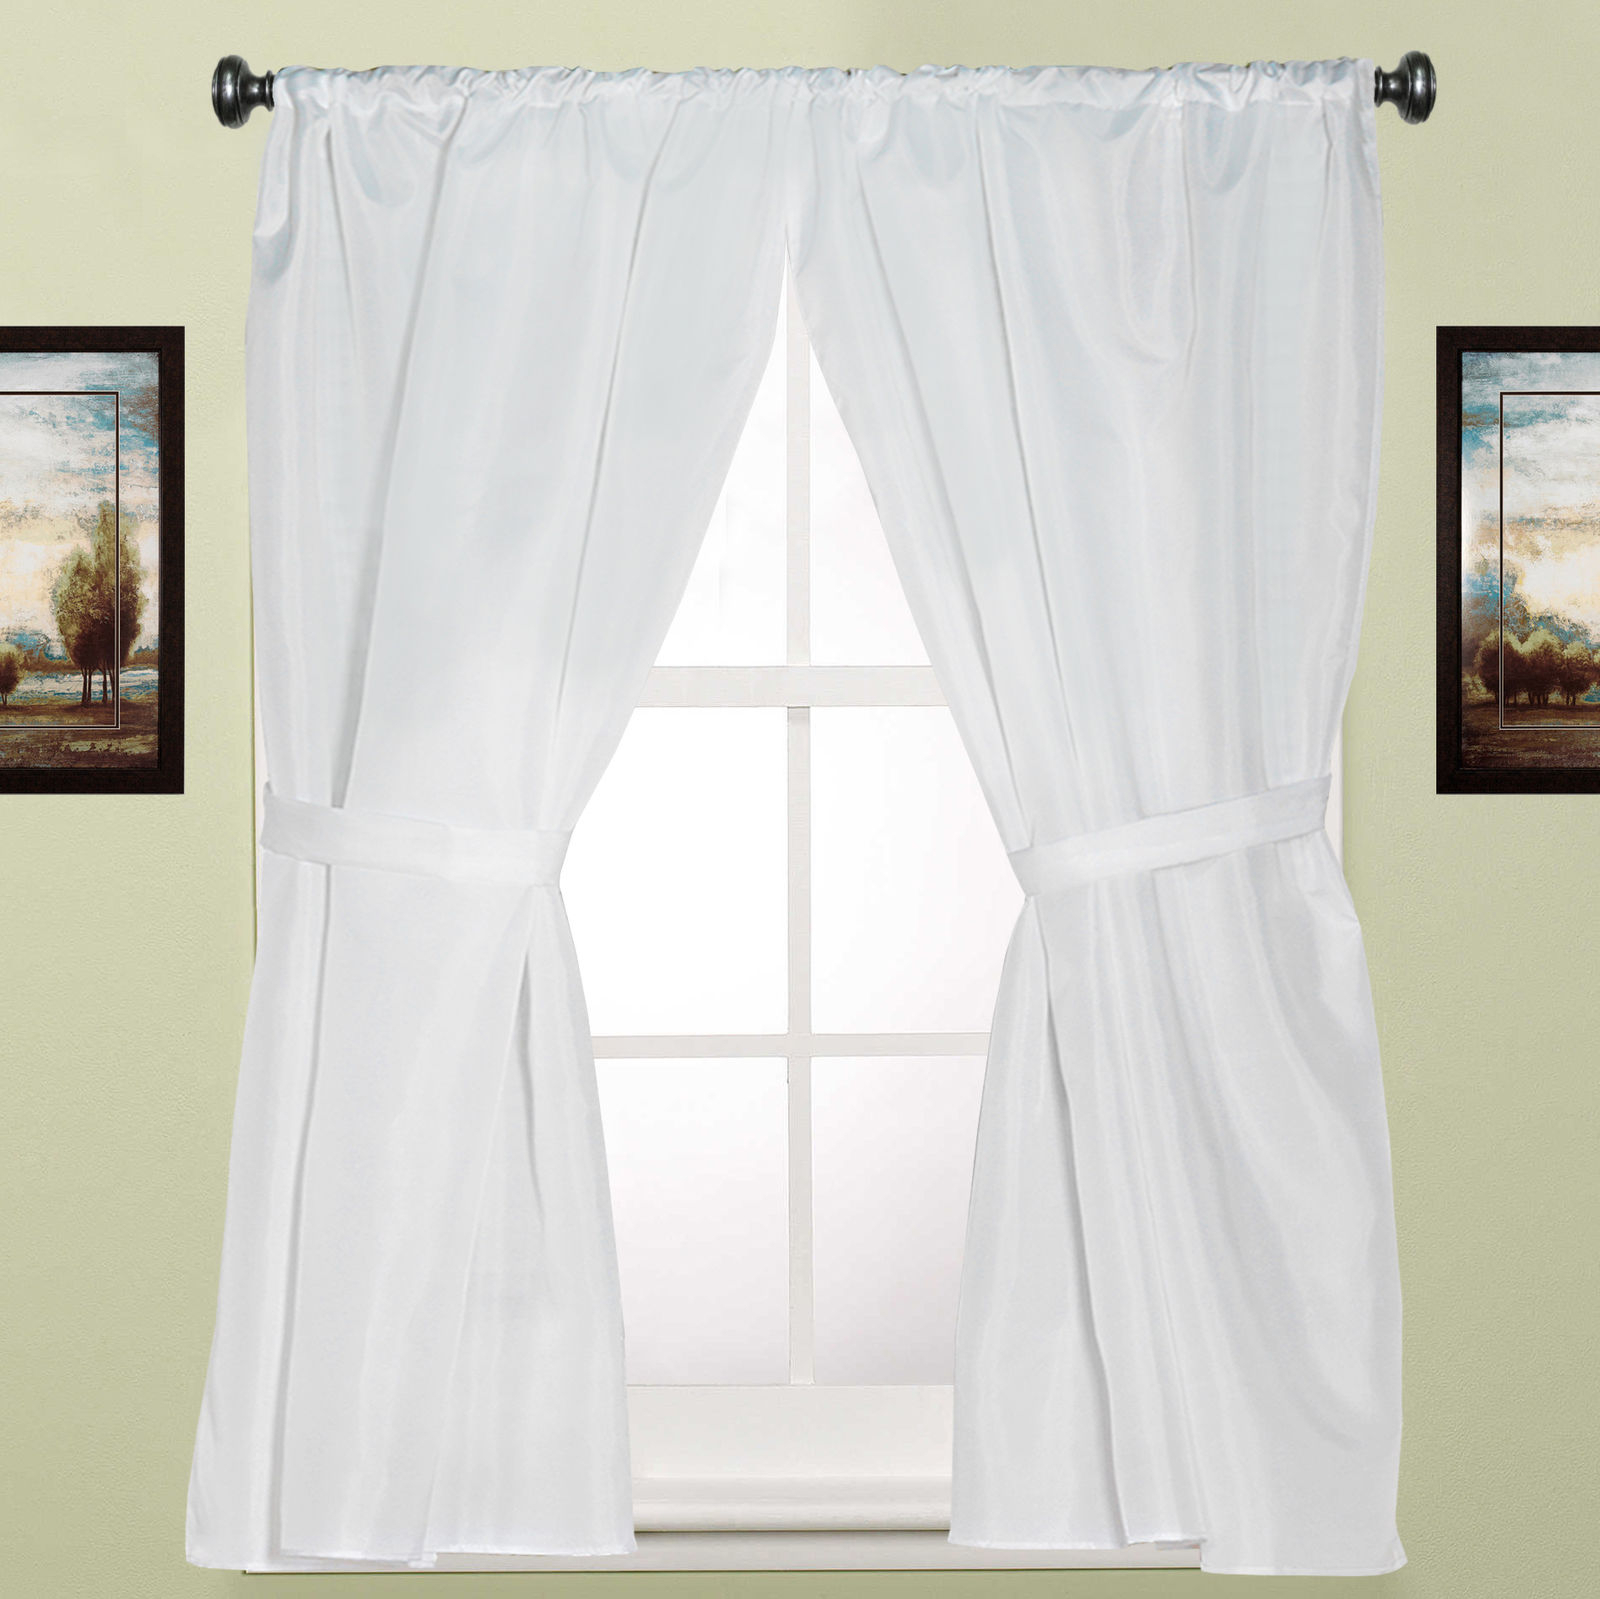 """Water Resistant White Fabric Bathroom Window Curtain Pair W/ Tiebacks 36"""" X  54"""" Inside Current Classic Hotel Quality Water Resistant Fabric Curtains Set With Tiebacks (View 18 of 20)"""